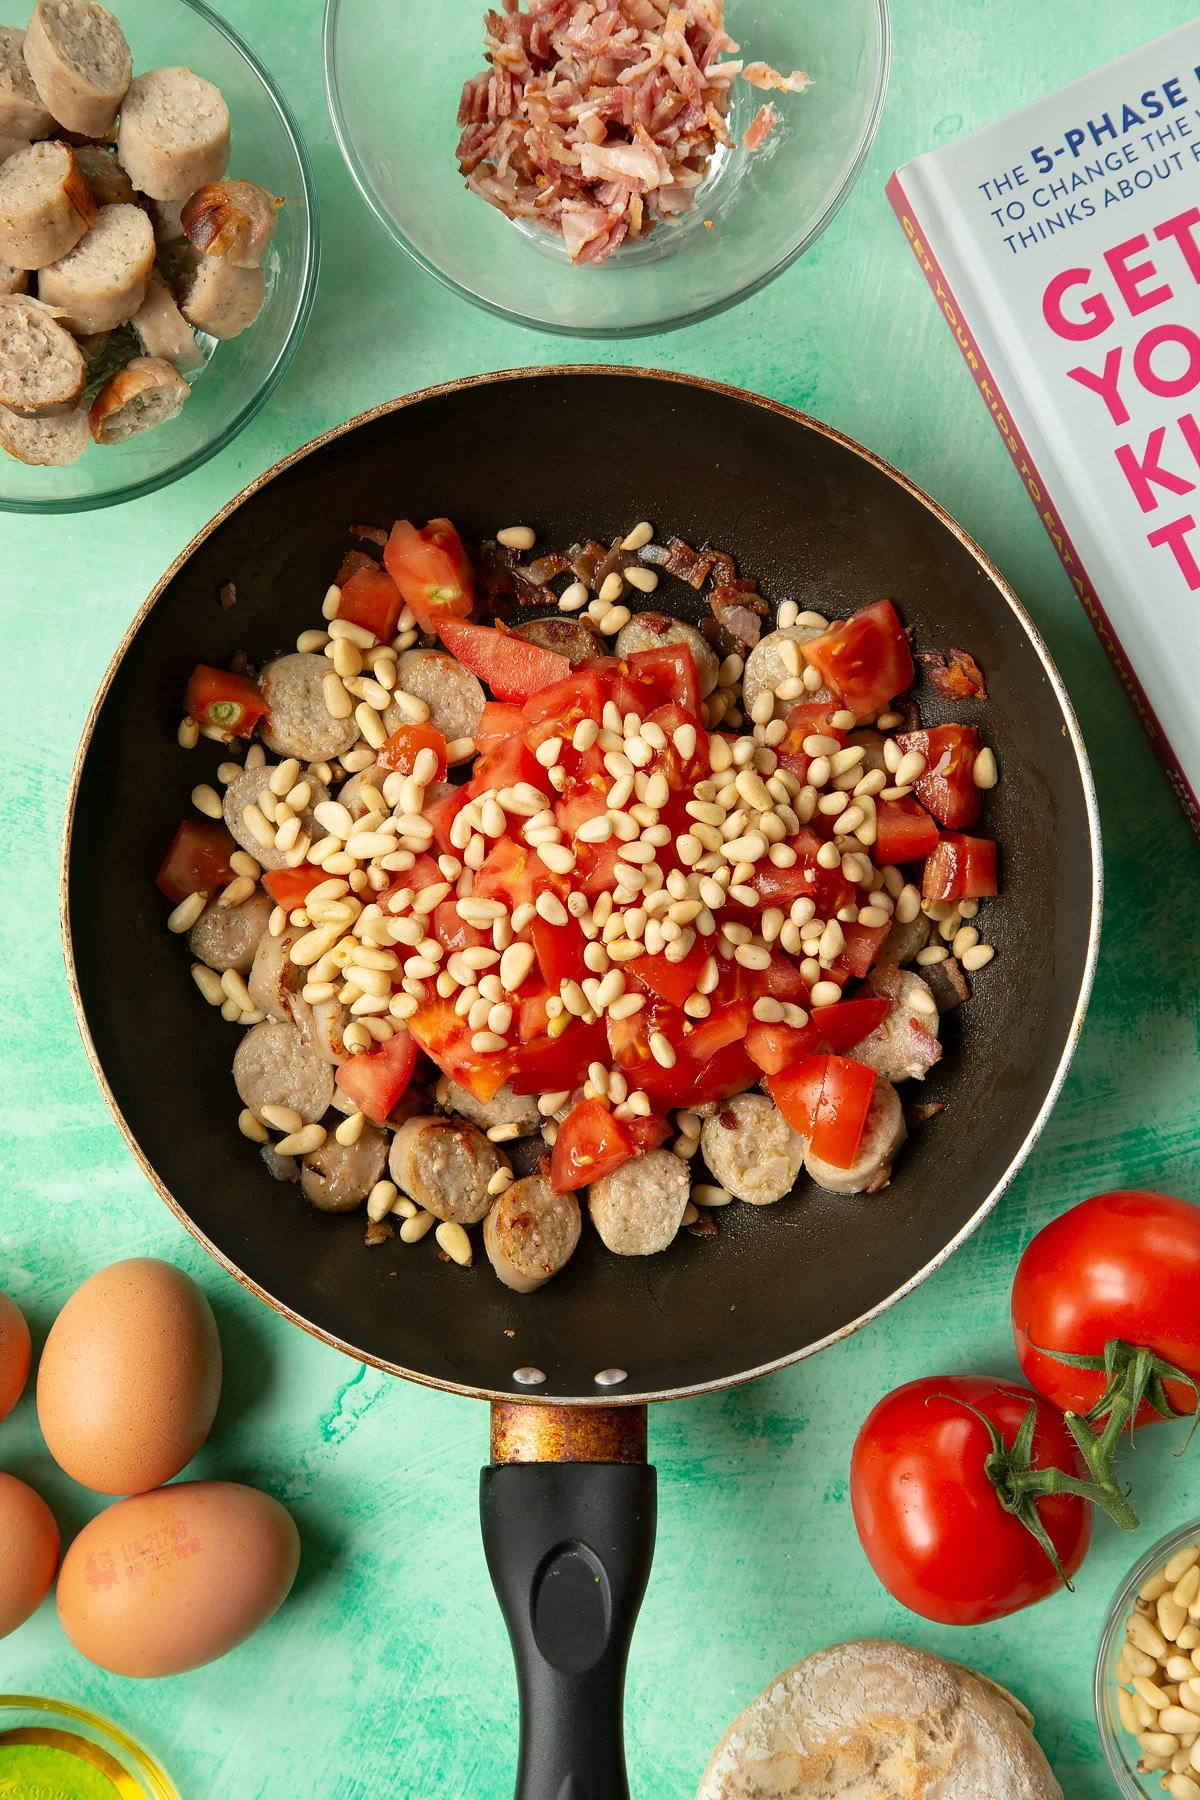 A frying pan containing fried sausage and bacon, topped with chopped tomatoes and pine nuts. The pan is surrounded by ingredients to make breakfast rolls.